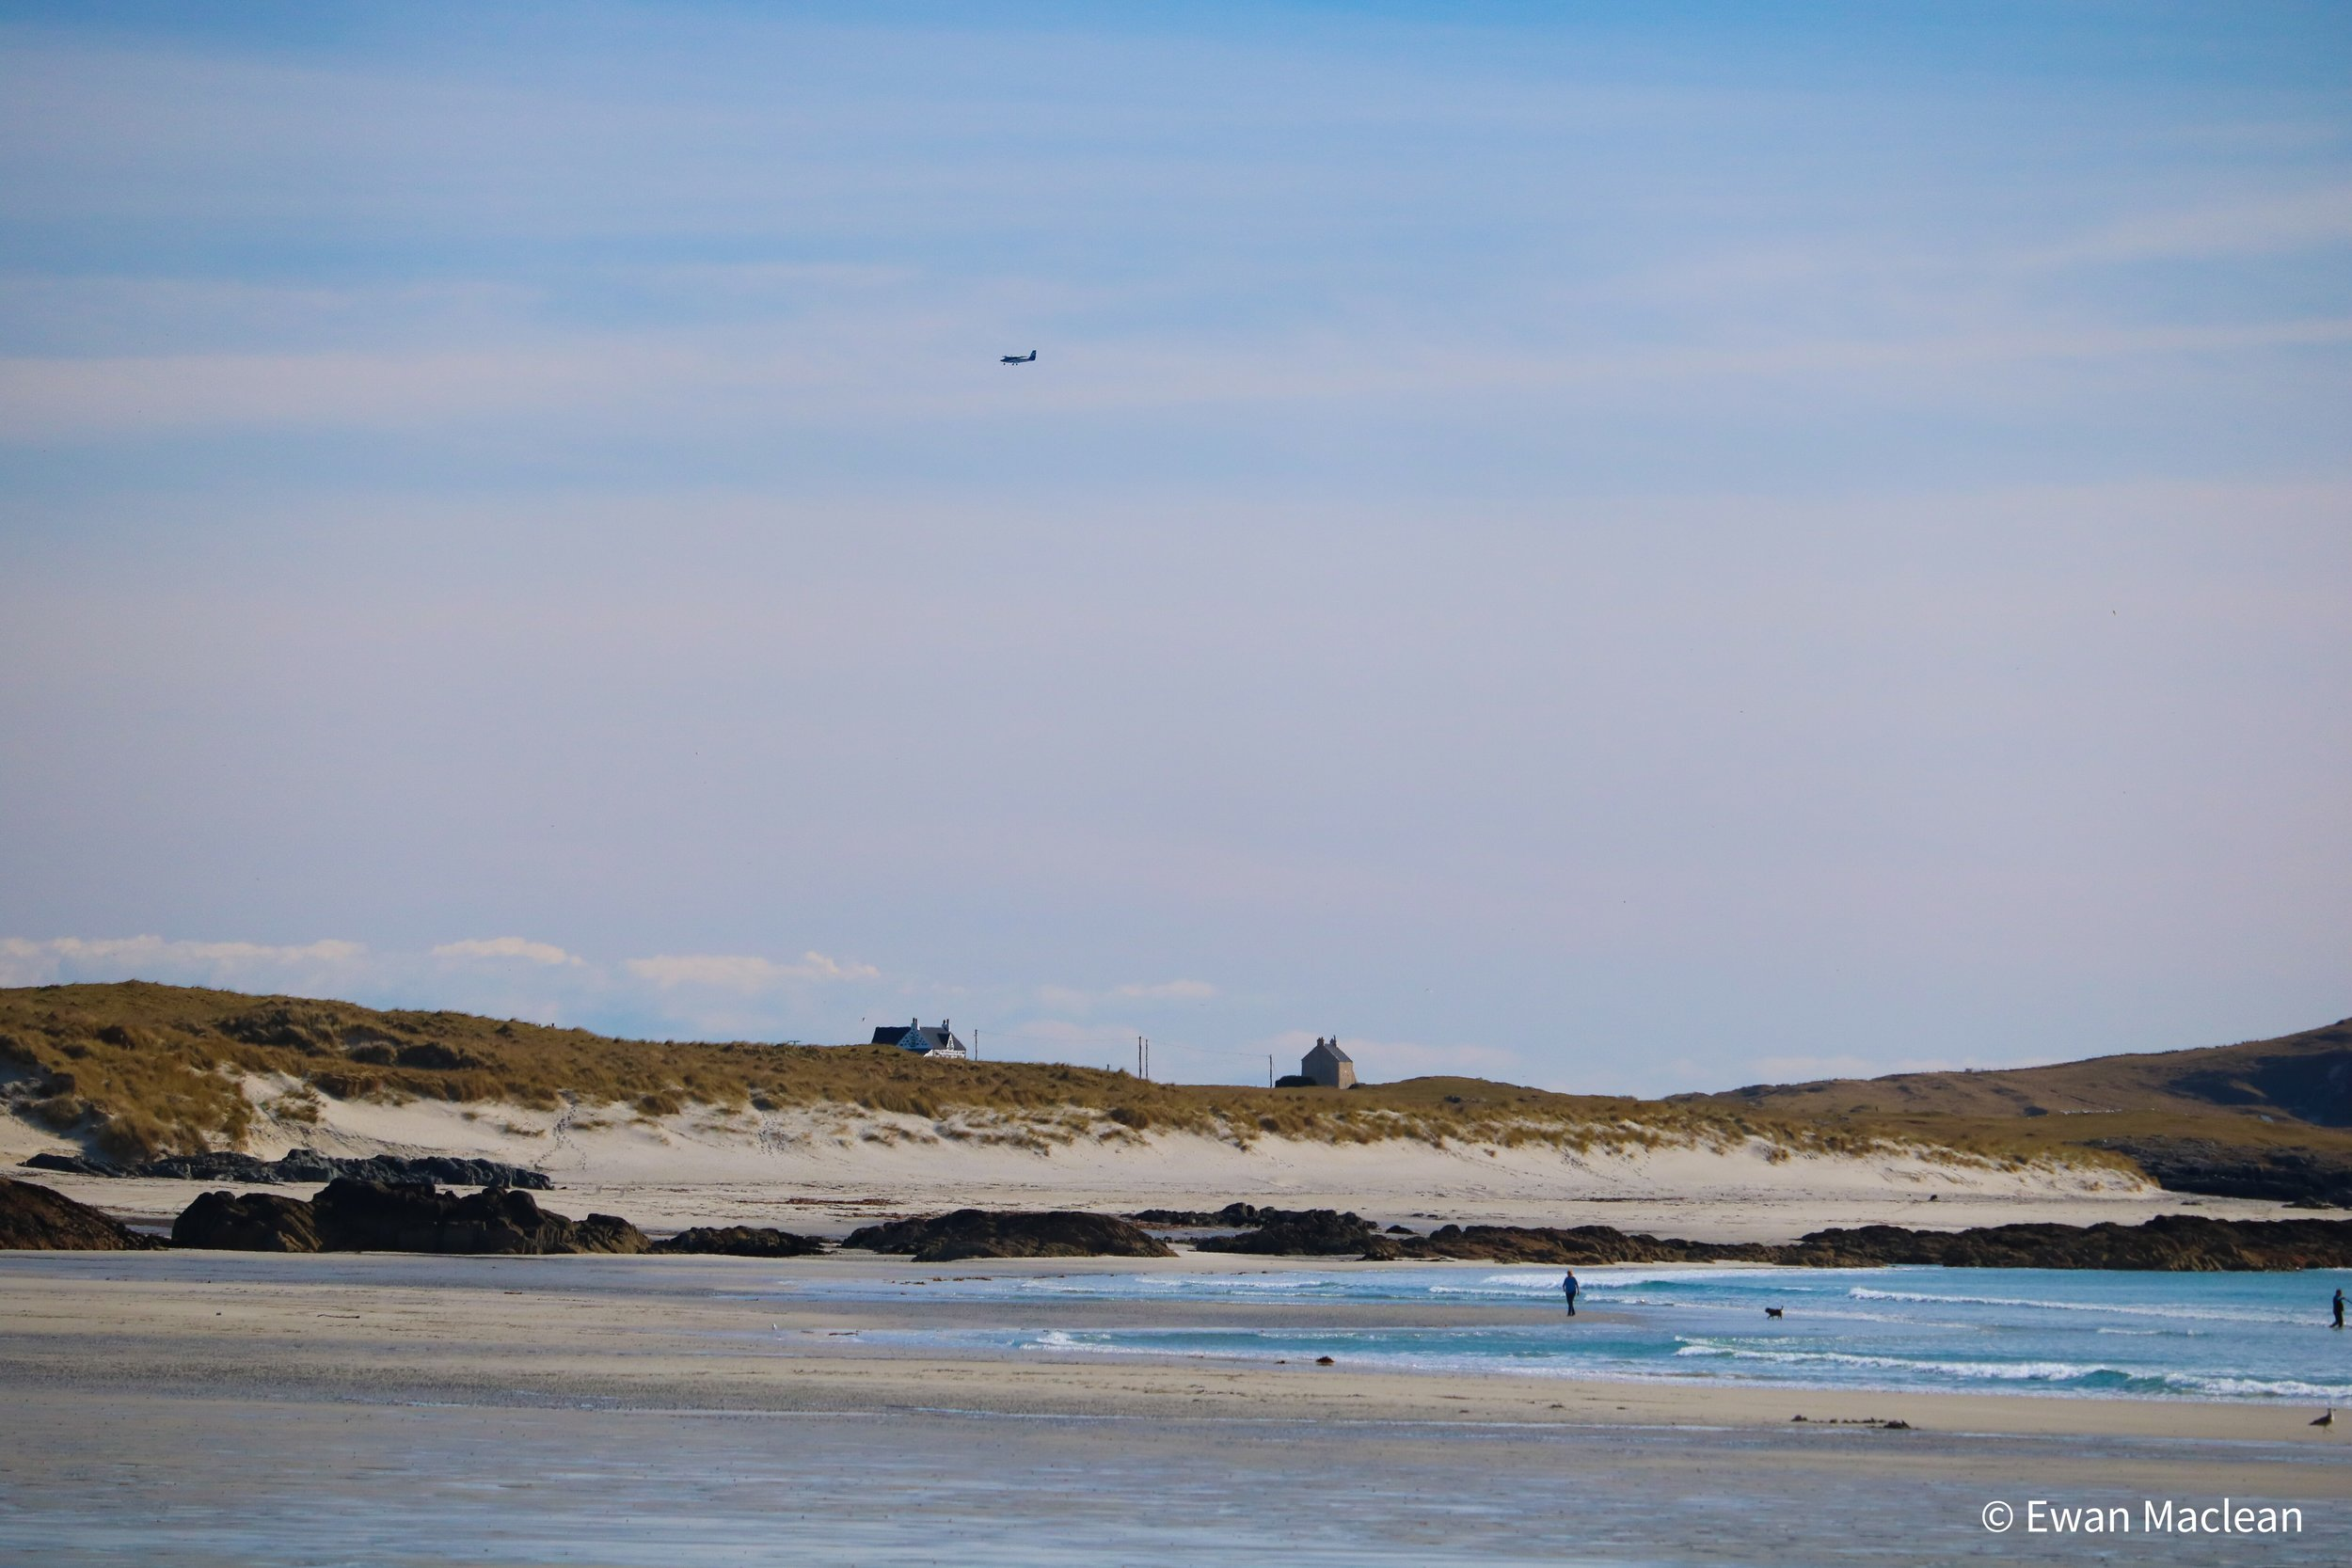 Plane coming into to land at Tiree Airport